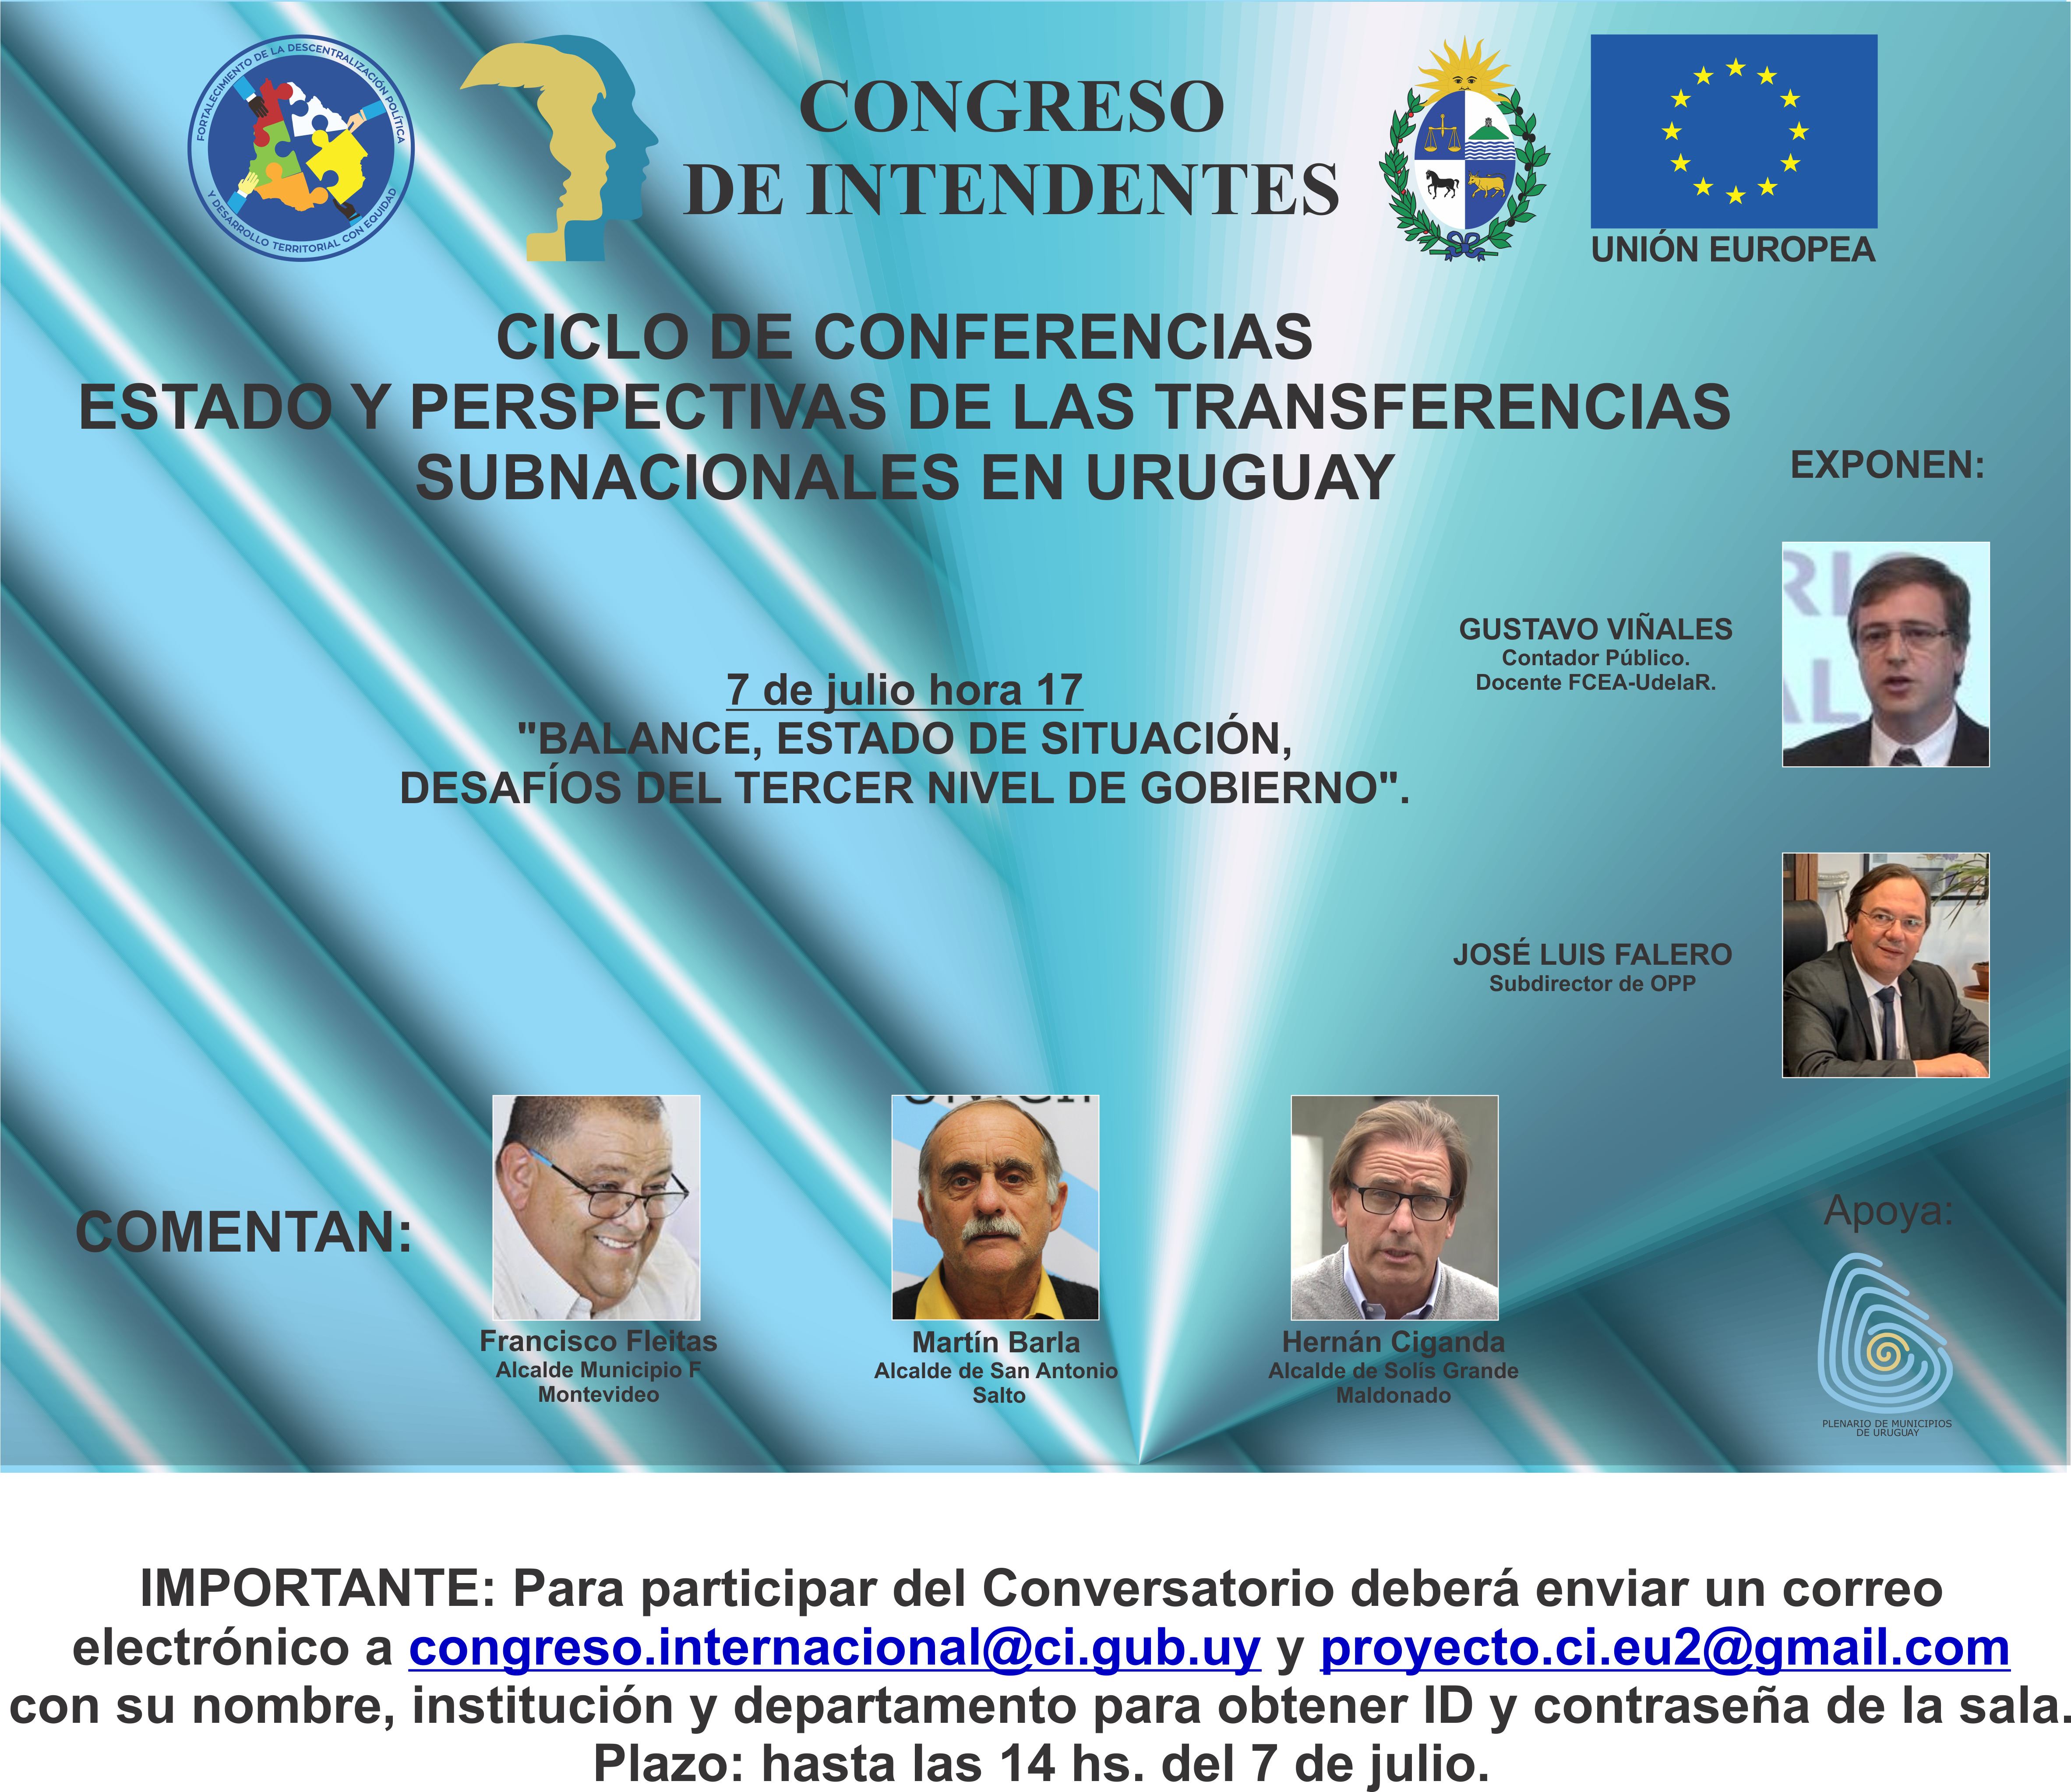 CICLO DE CONFERENCIAS 4